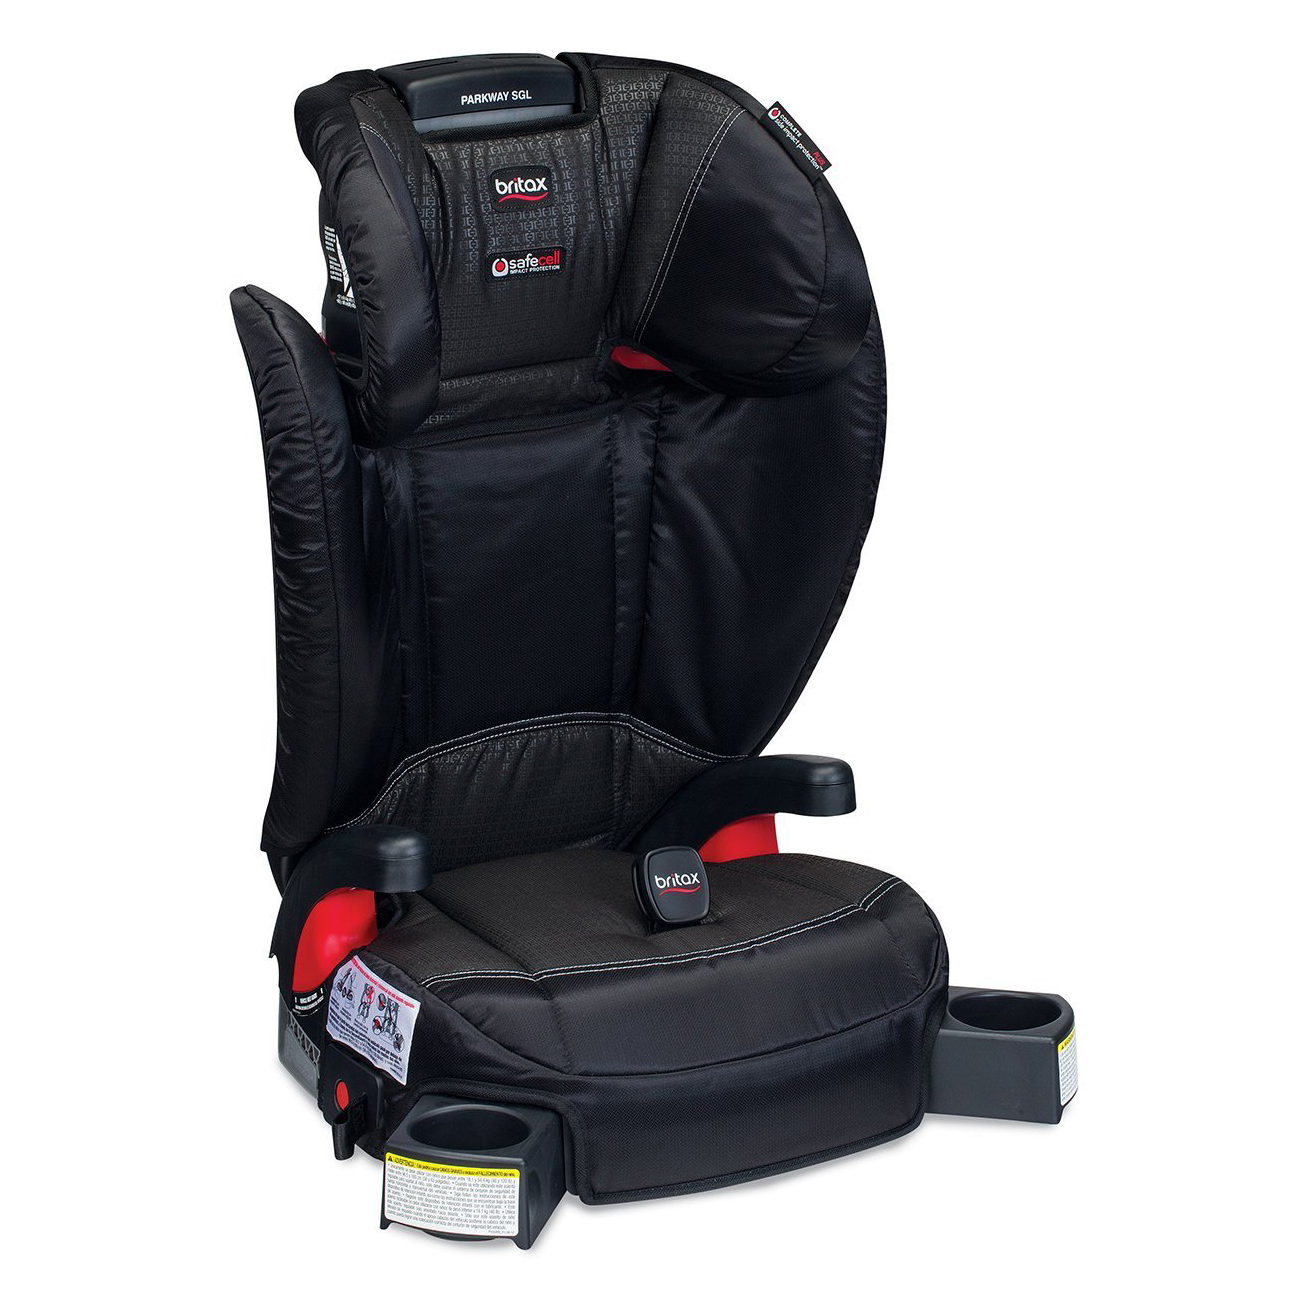 Britax Car Seat Vs Graco Graco Highback Turbobooster Vs Britax Parkway Battle Of